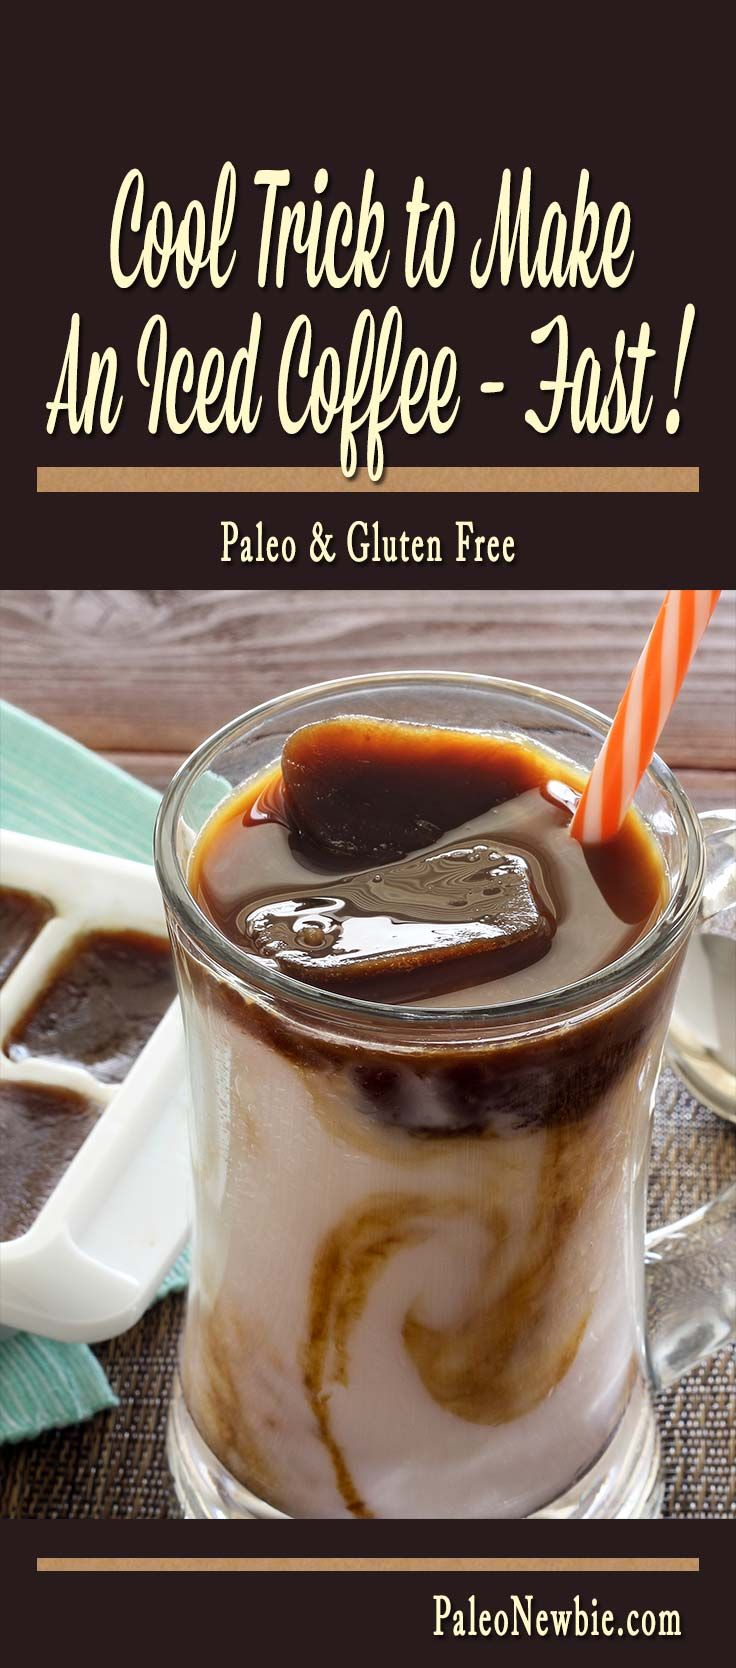 Check out this delicious timesaver – make a tall paleo iced coffee or iced latte at home in about 30 seconds if you use this clever little trick!